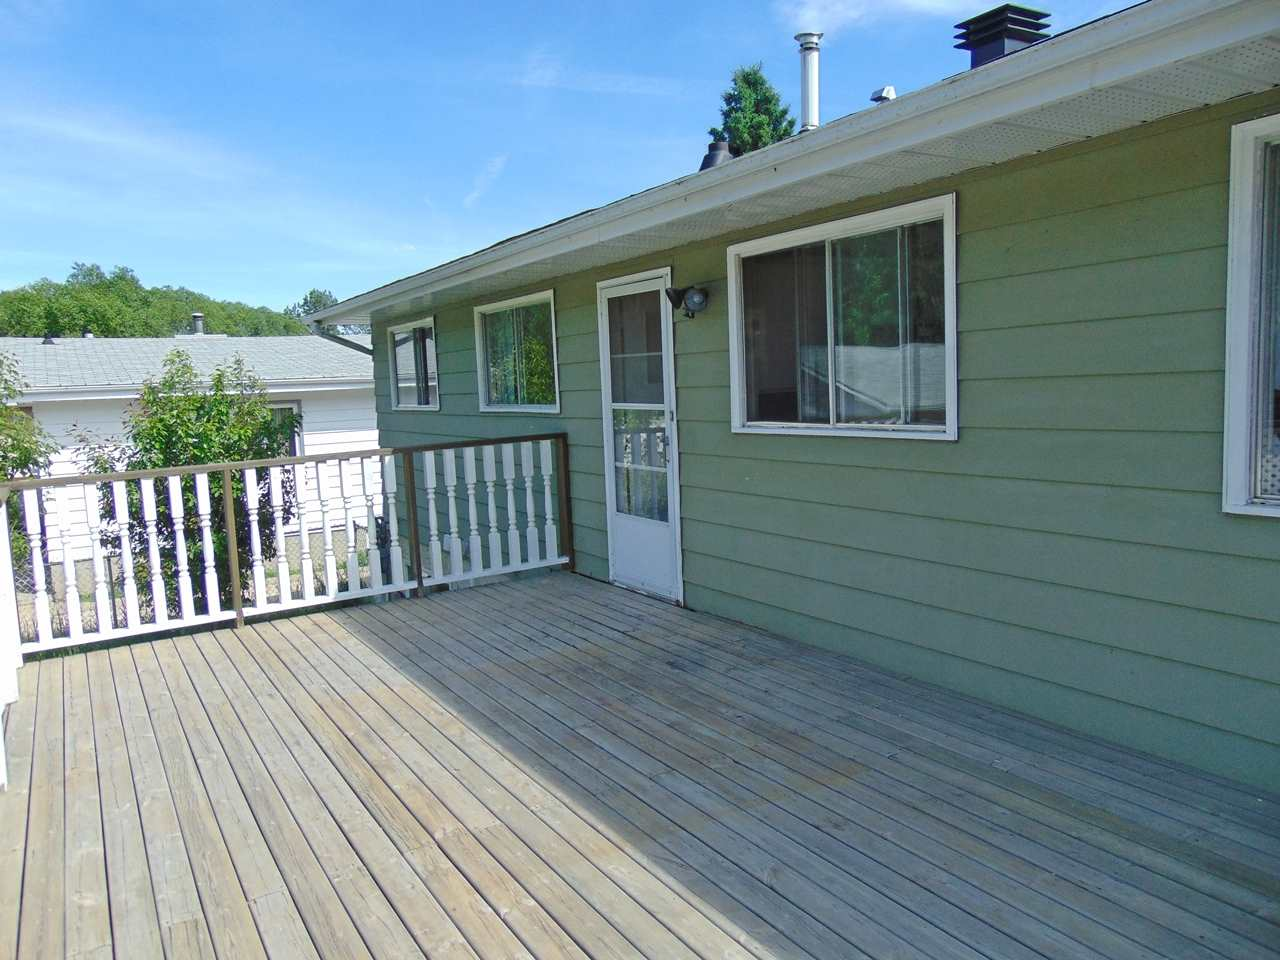 Photo 12: 5911 53A Avenue: Redwater House for sale : MLS® # E4067896